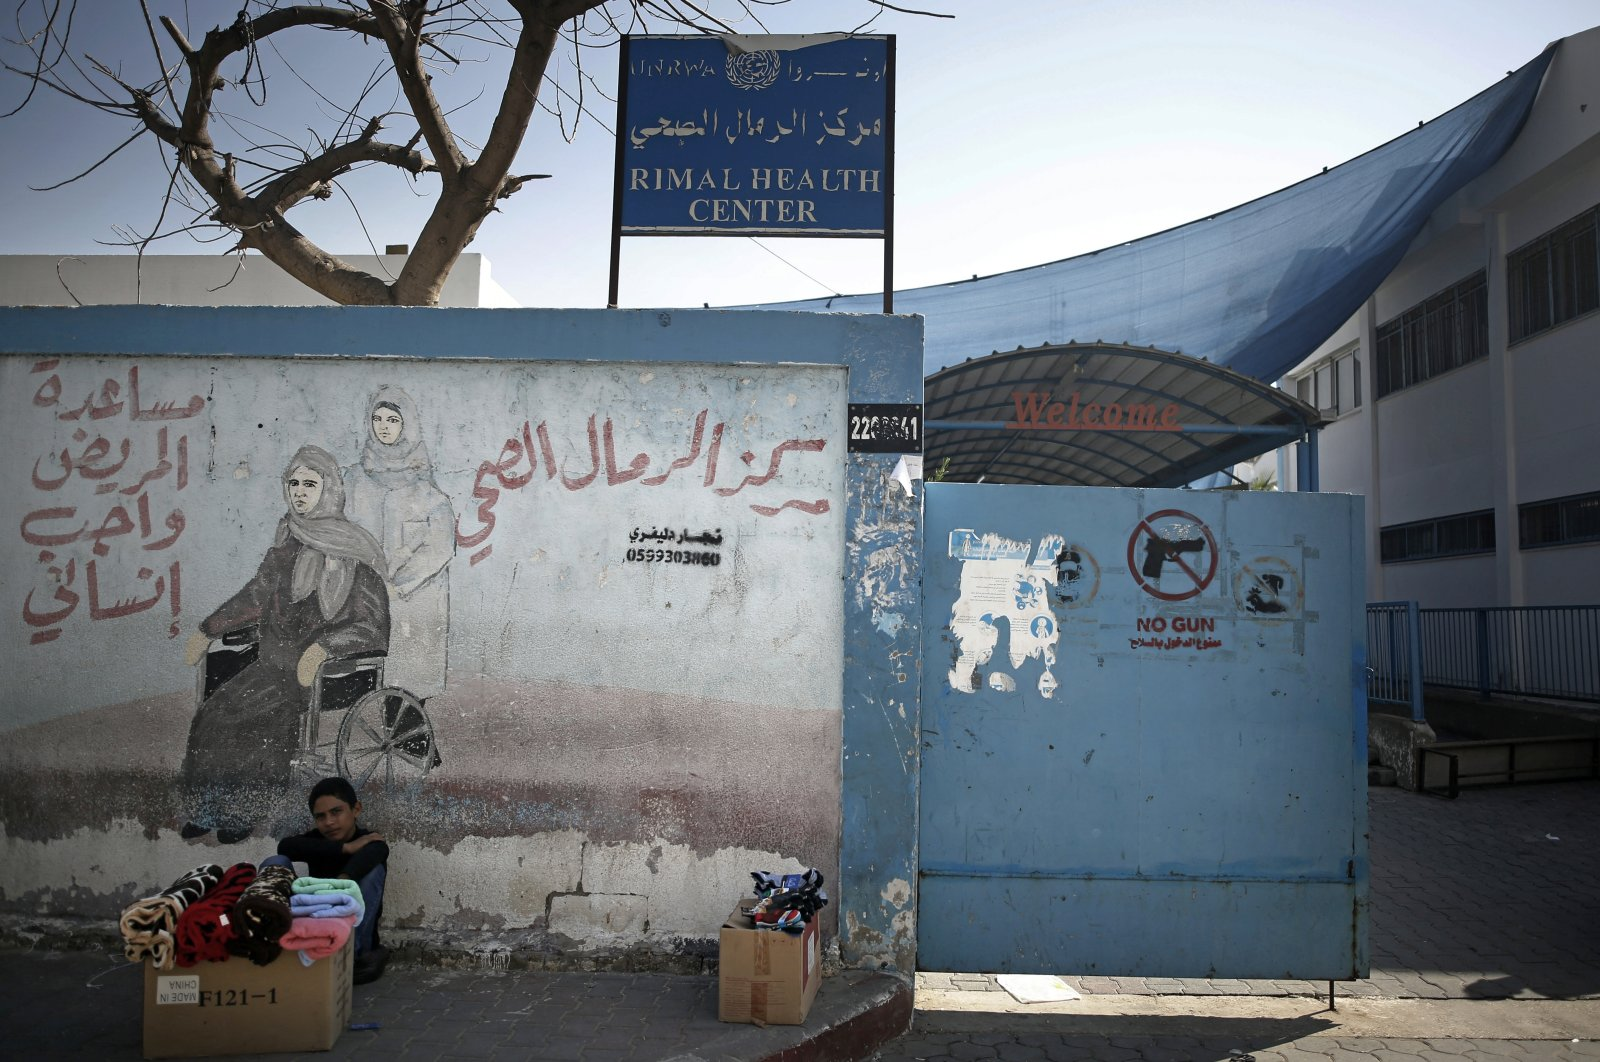 A Palestinian boy displays clothes for sale next to the entrance of the UNRWA Rimal Health Center, Gaza City, Nov. 9, 2020. (AP Photo)